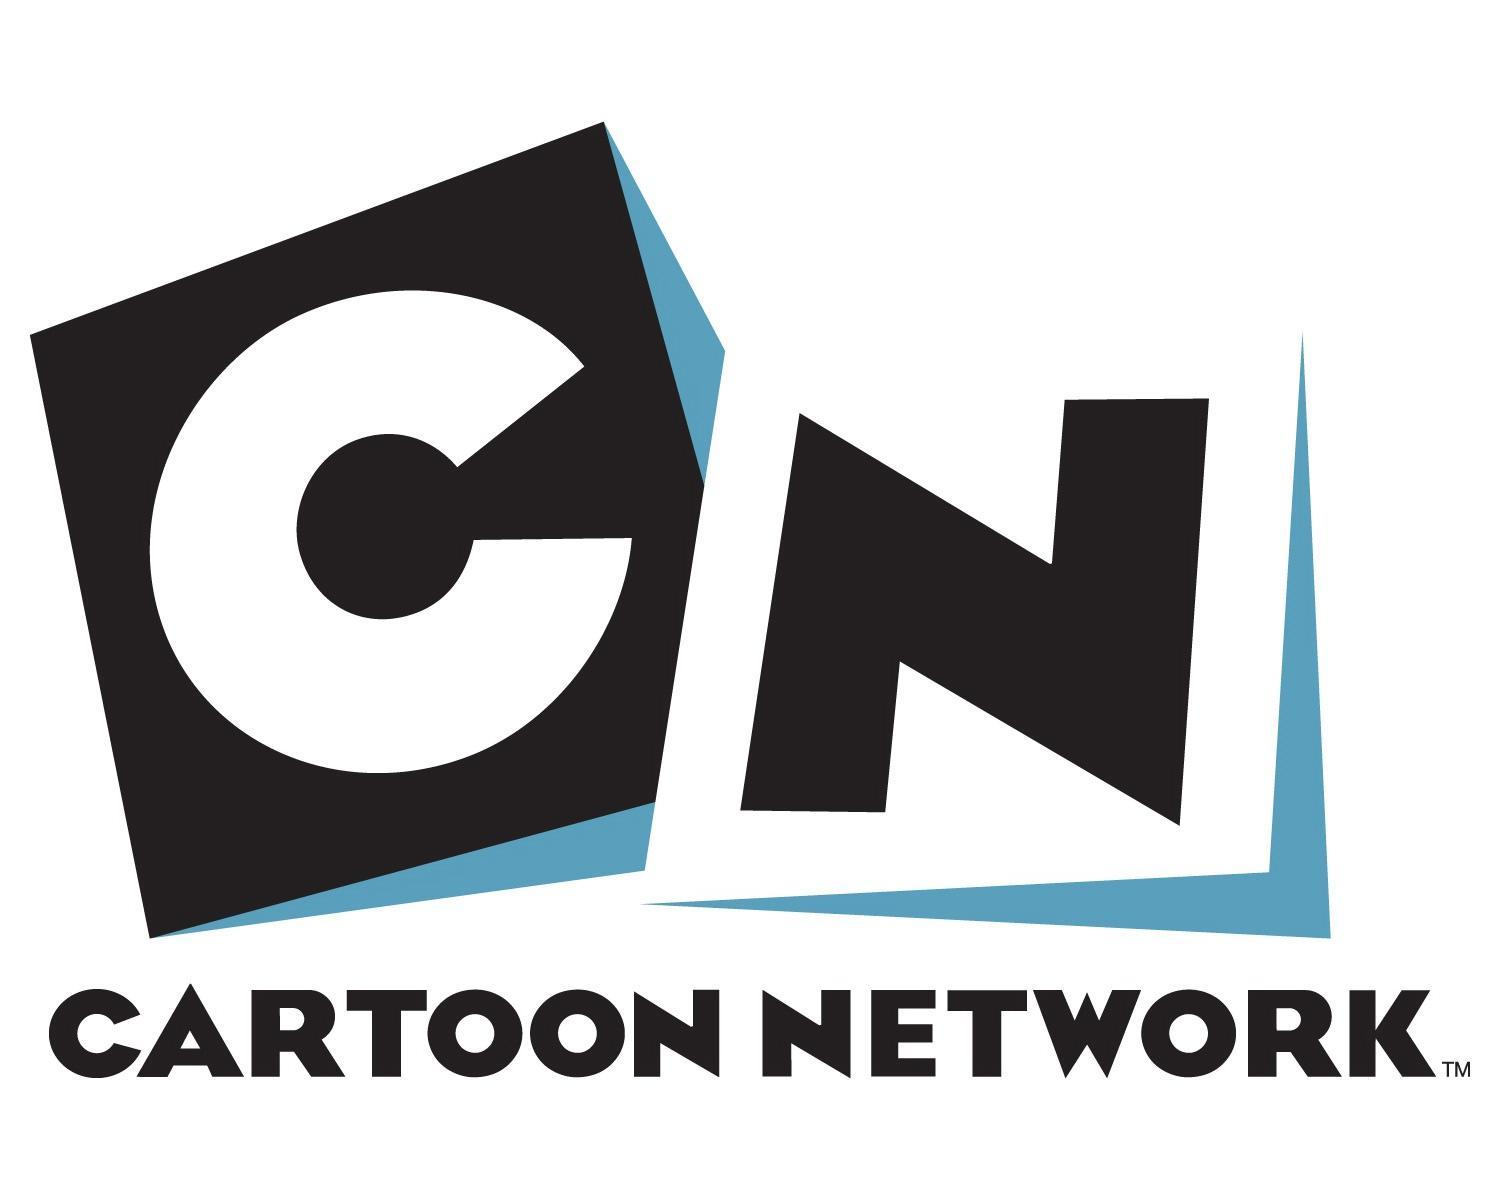 Favorite moment in: Cartoon Network shows.